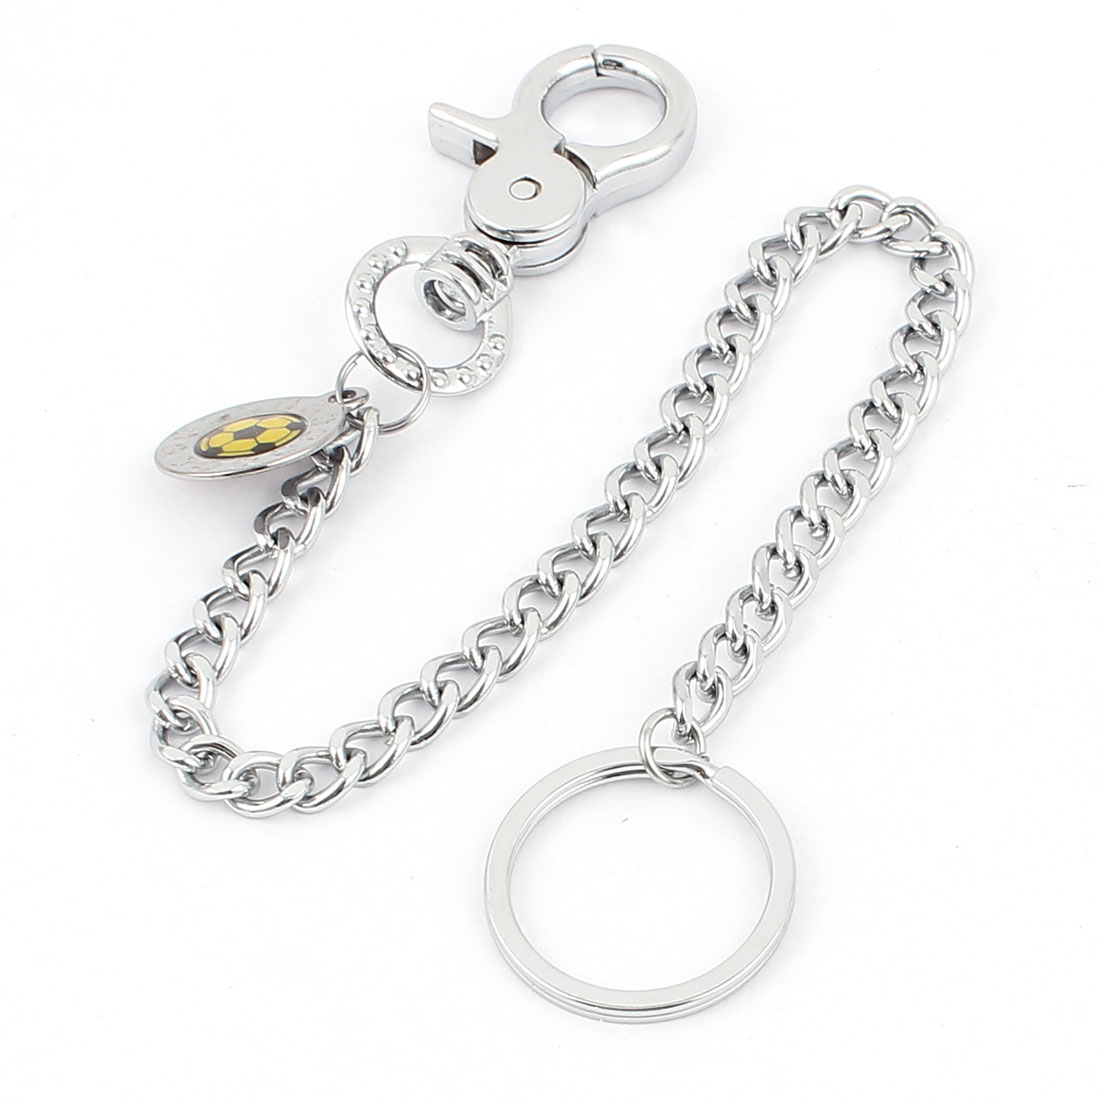 Metal Keyring Keychain Lobster Clasps Closure Silver Tone